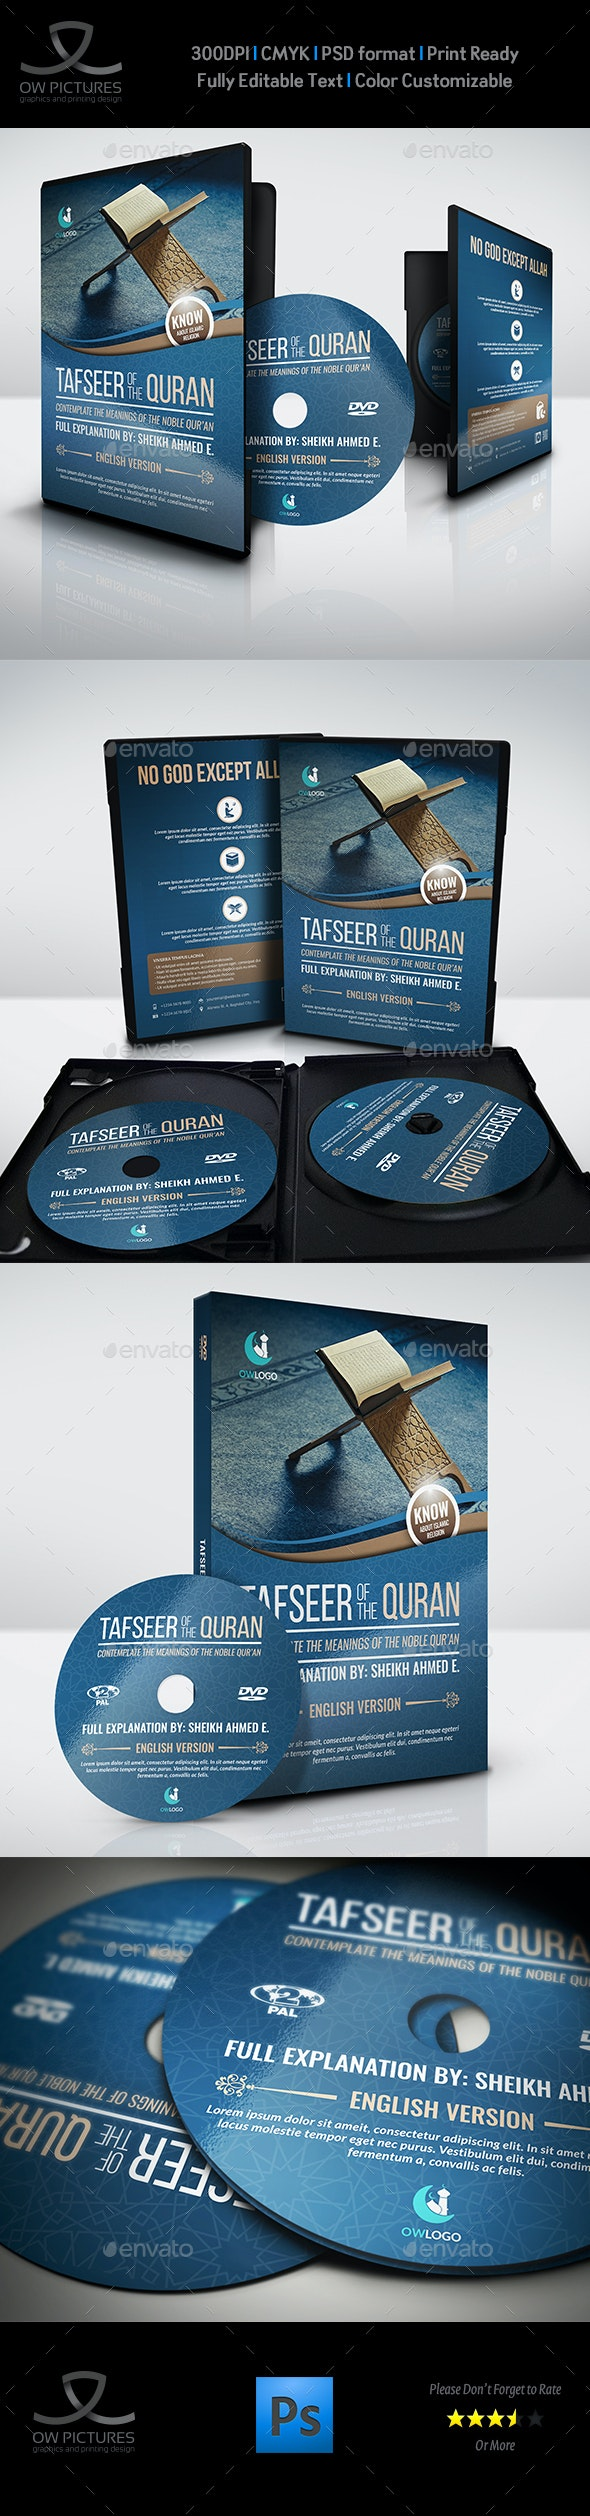 Islamic DVD Cover and Label Template Vol.2 - CD & DVD Artwork Print Templates